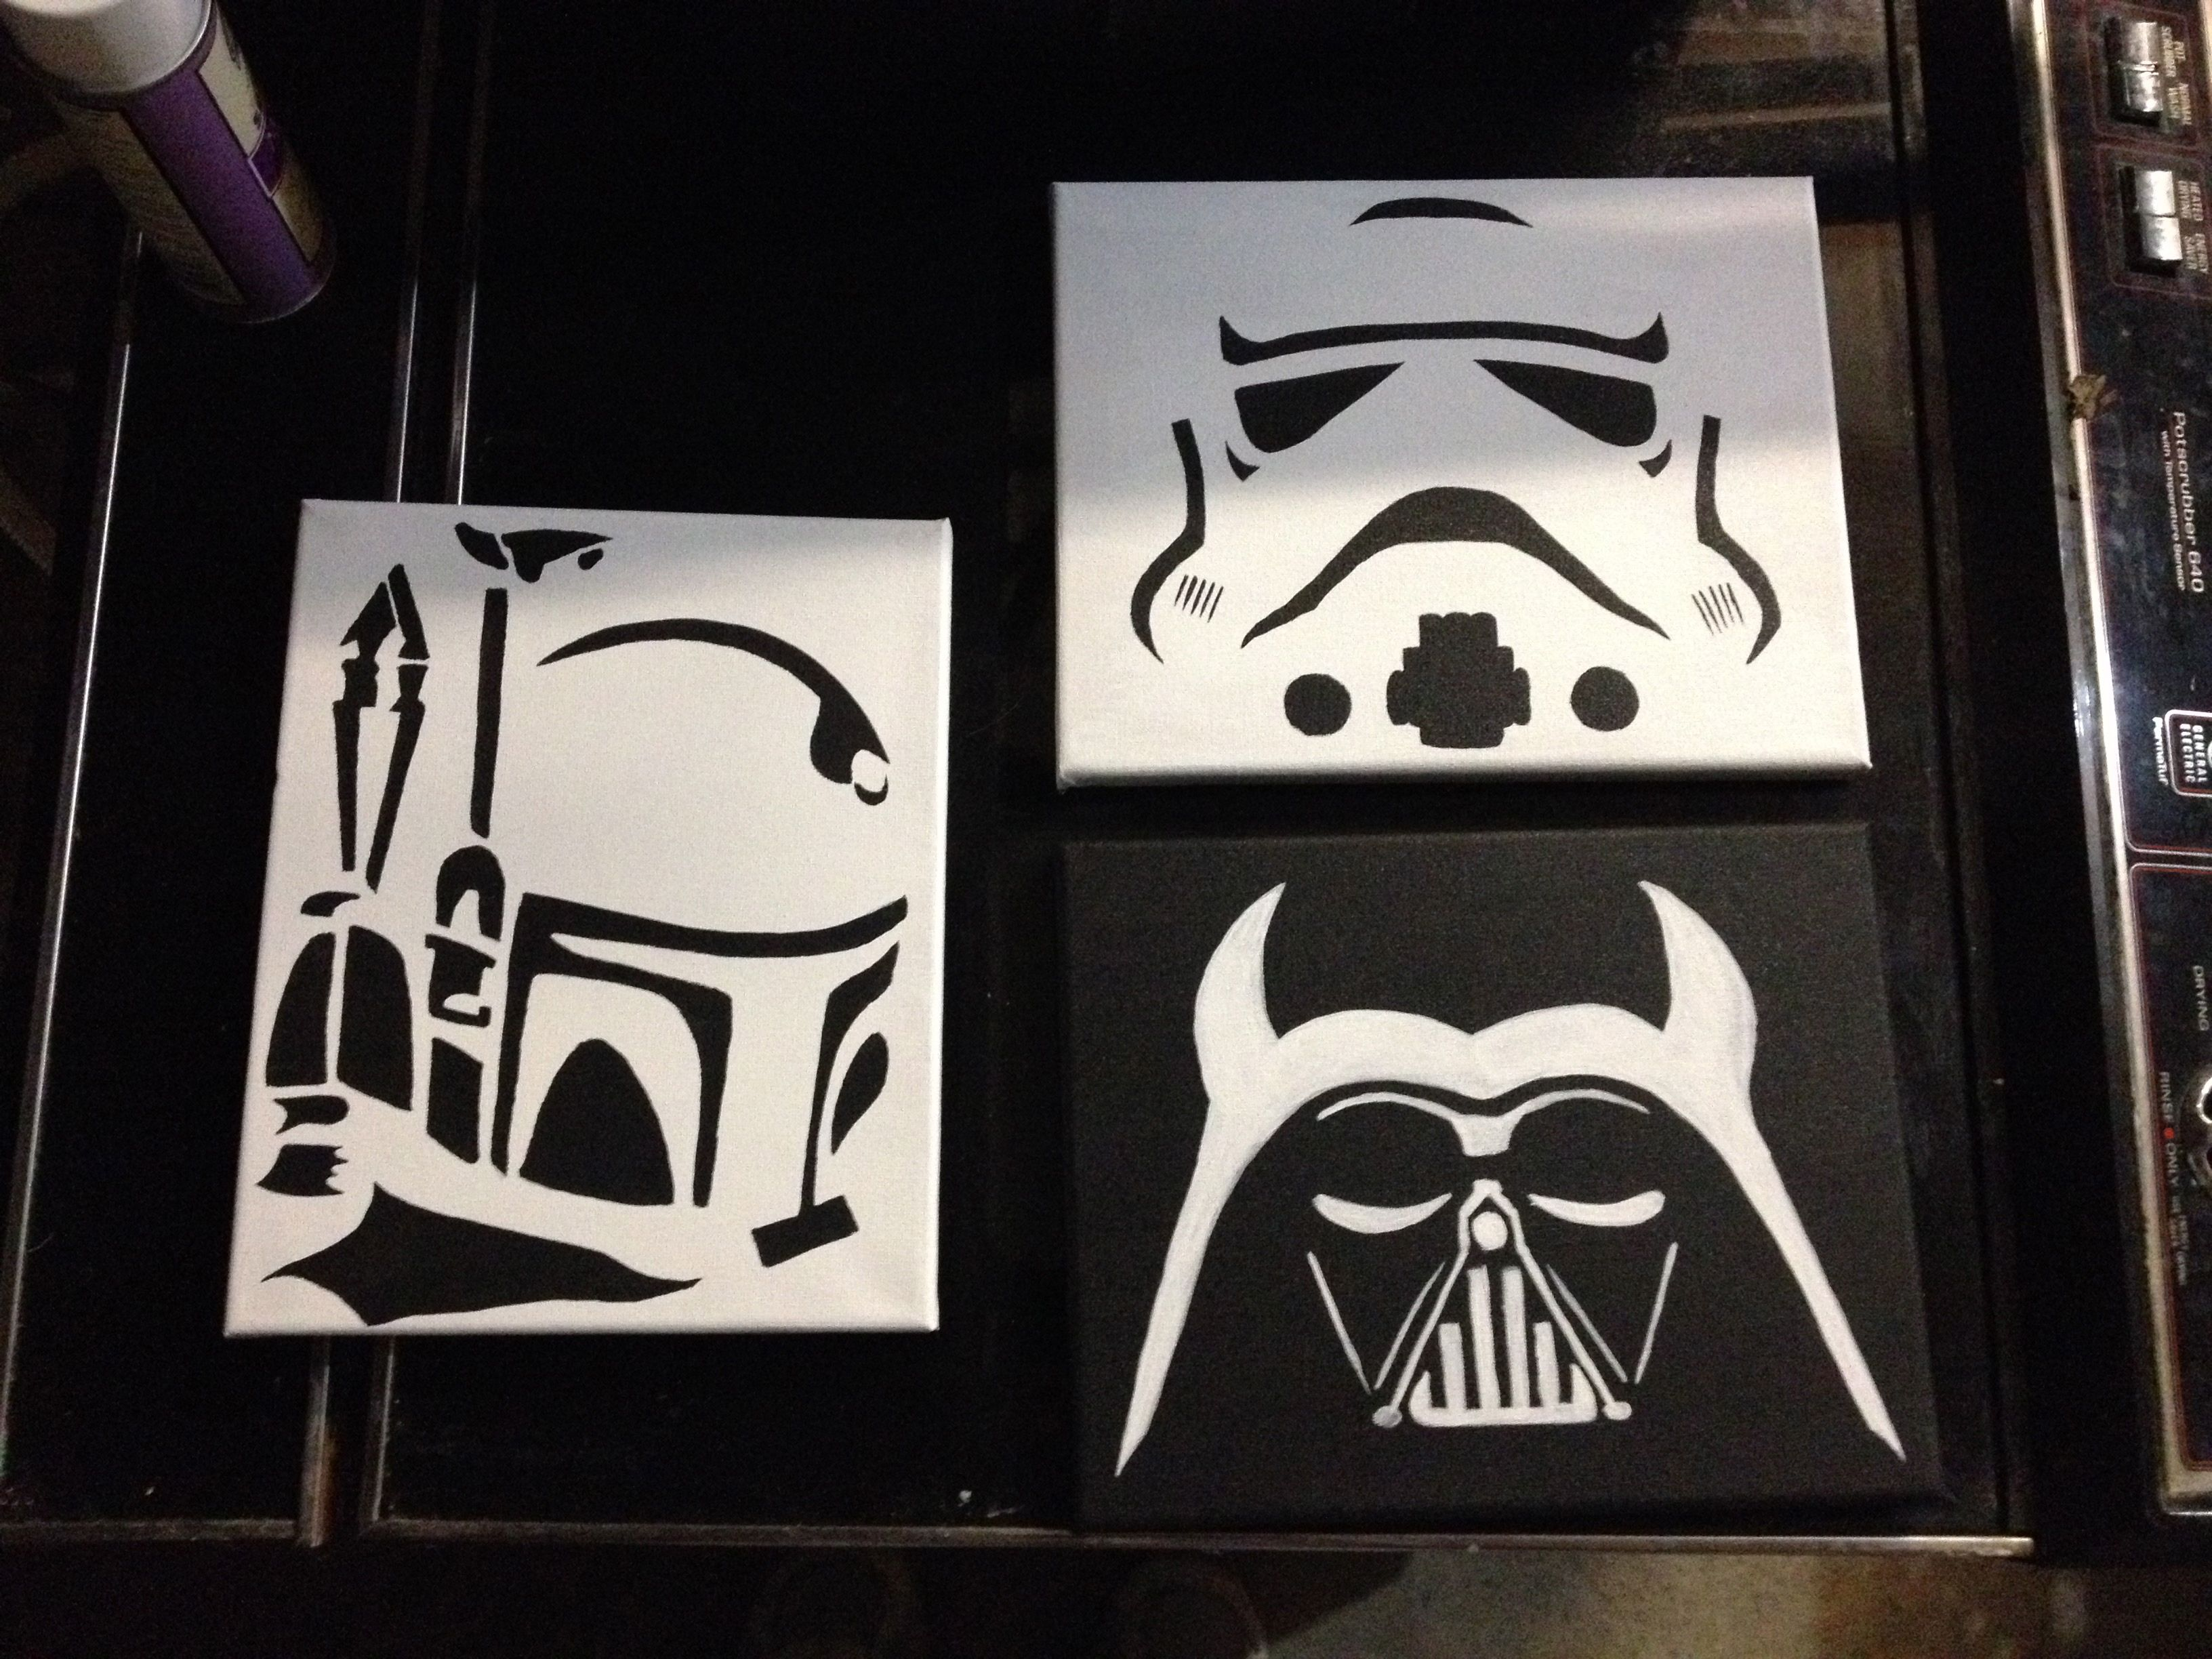 Boba Fett, Storm Trooper, Darth Vader. Star Wars series. Each ...